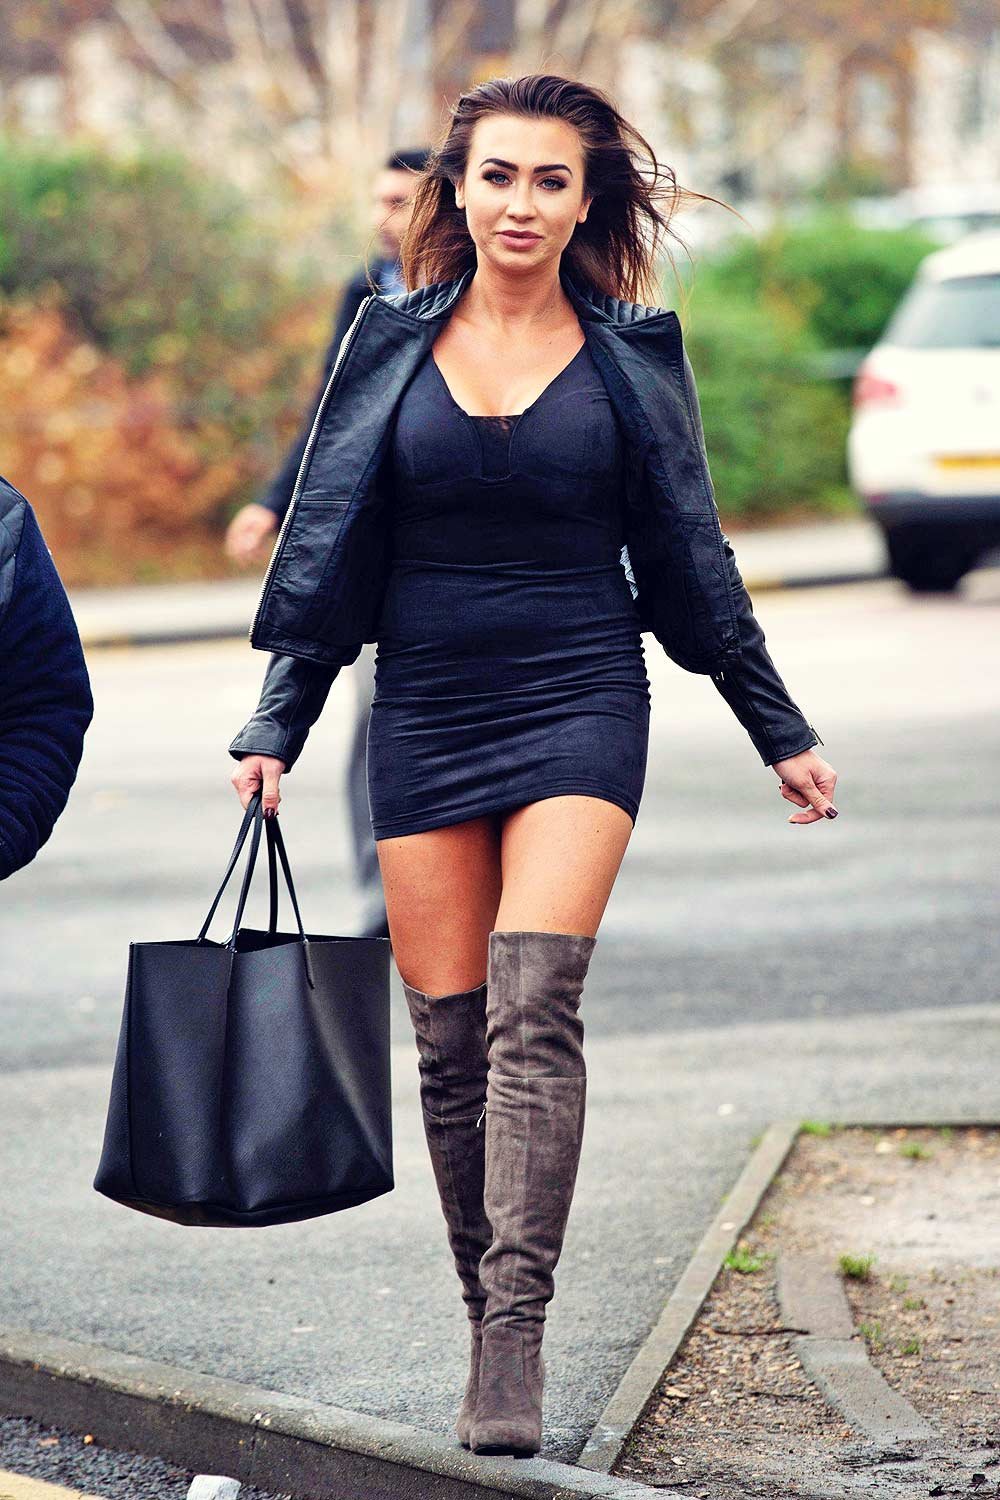 Photos Lauren Goodger nudes (12 photo), Ass, Fappening, Twitter, cameltoe 2015